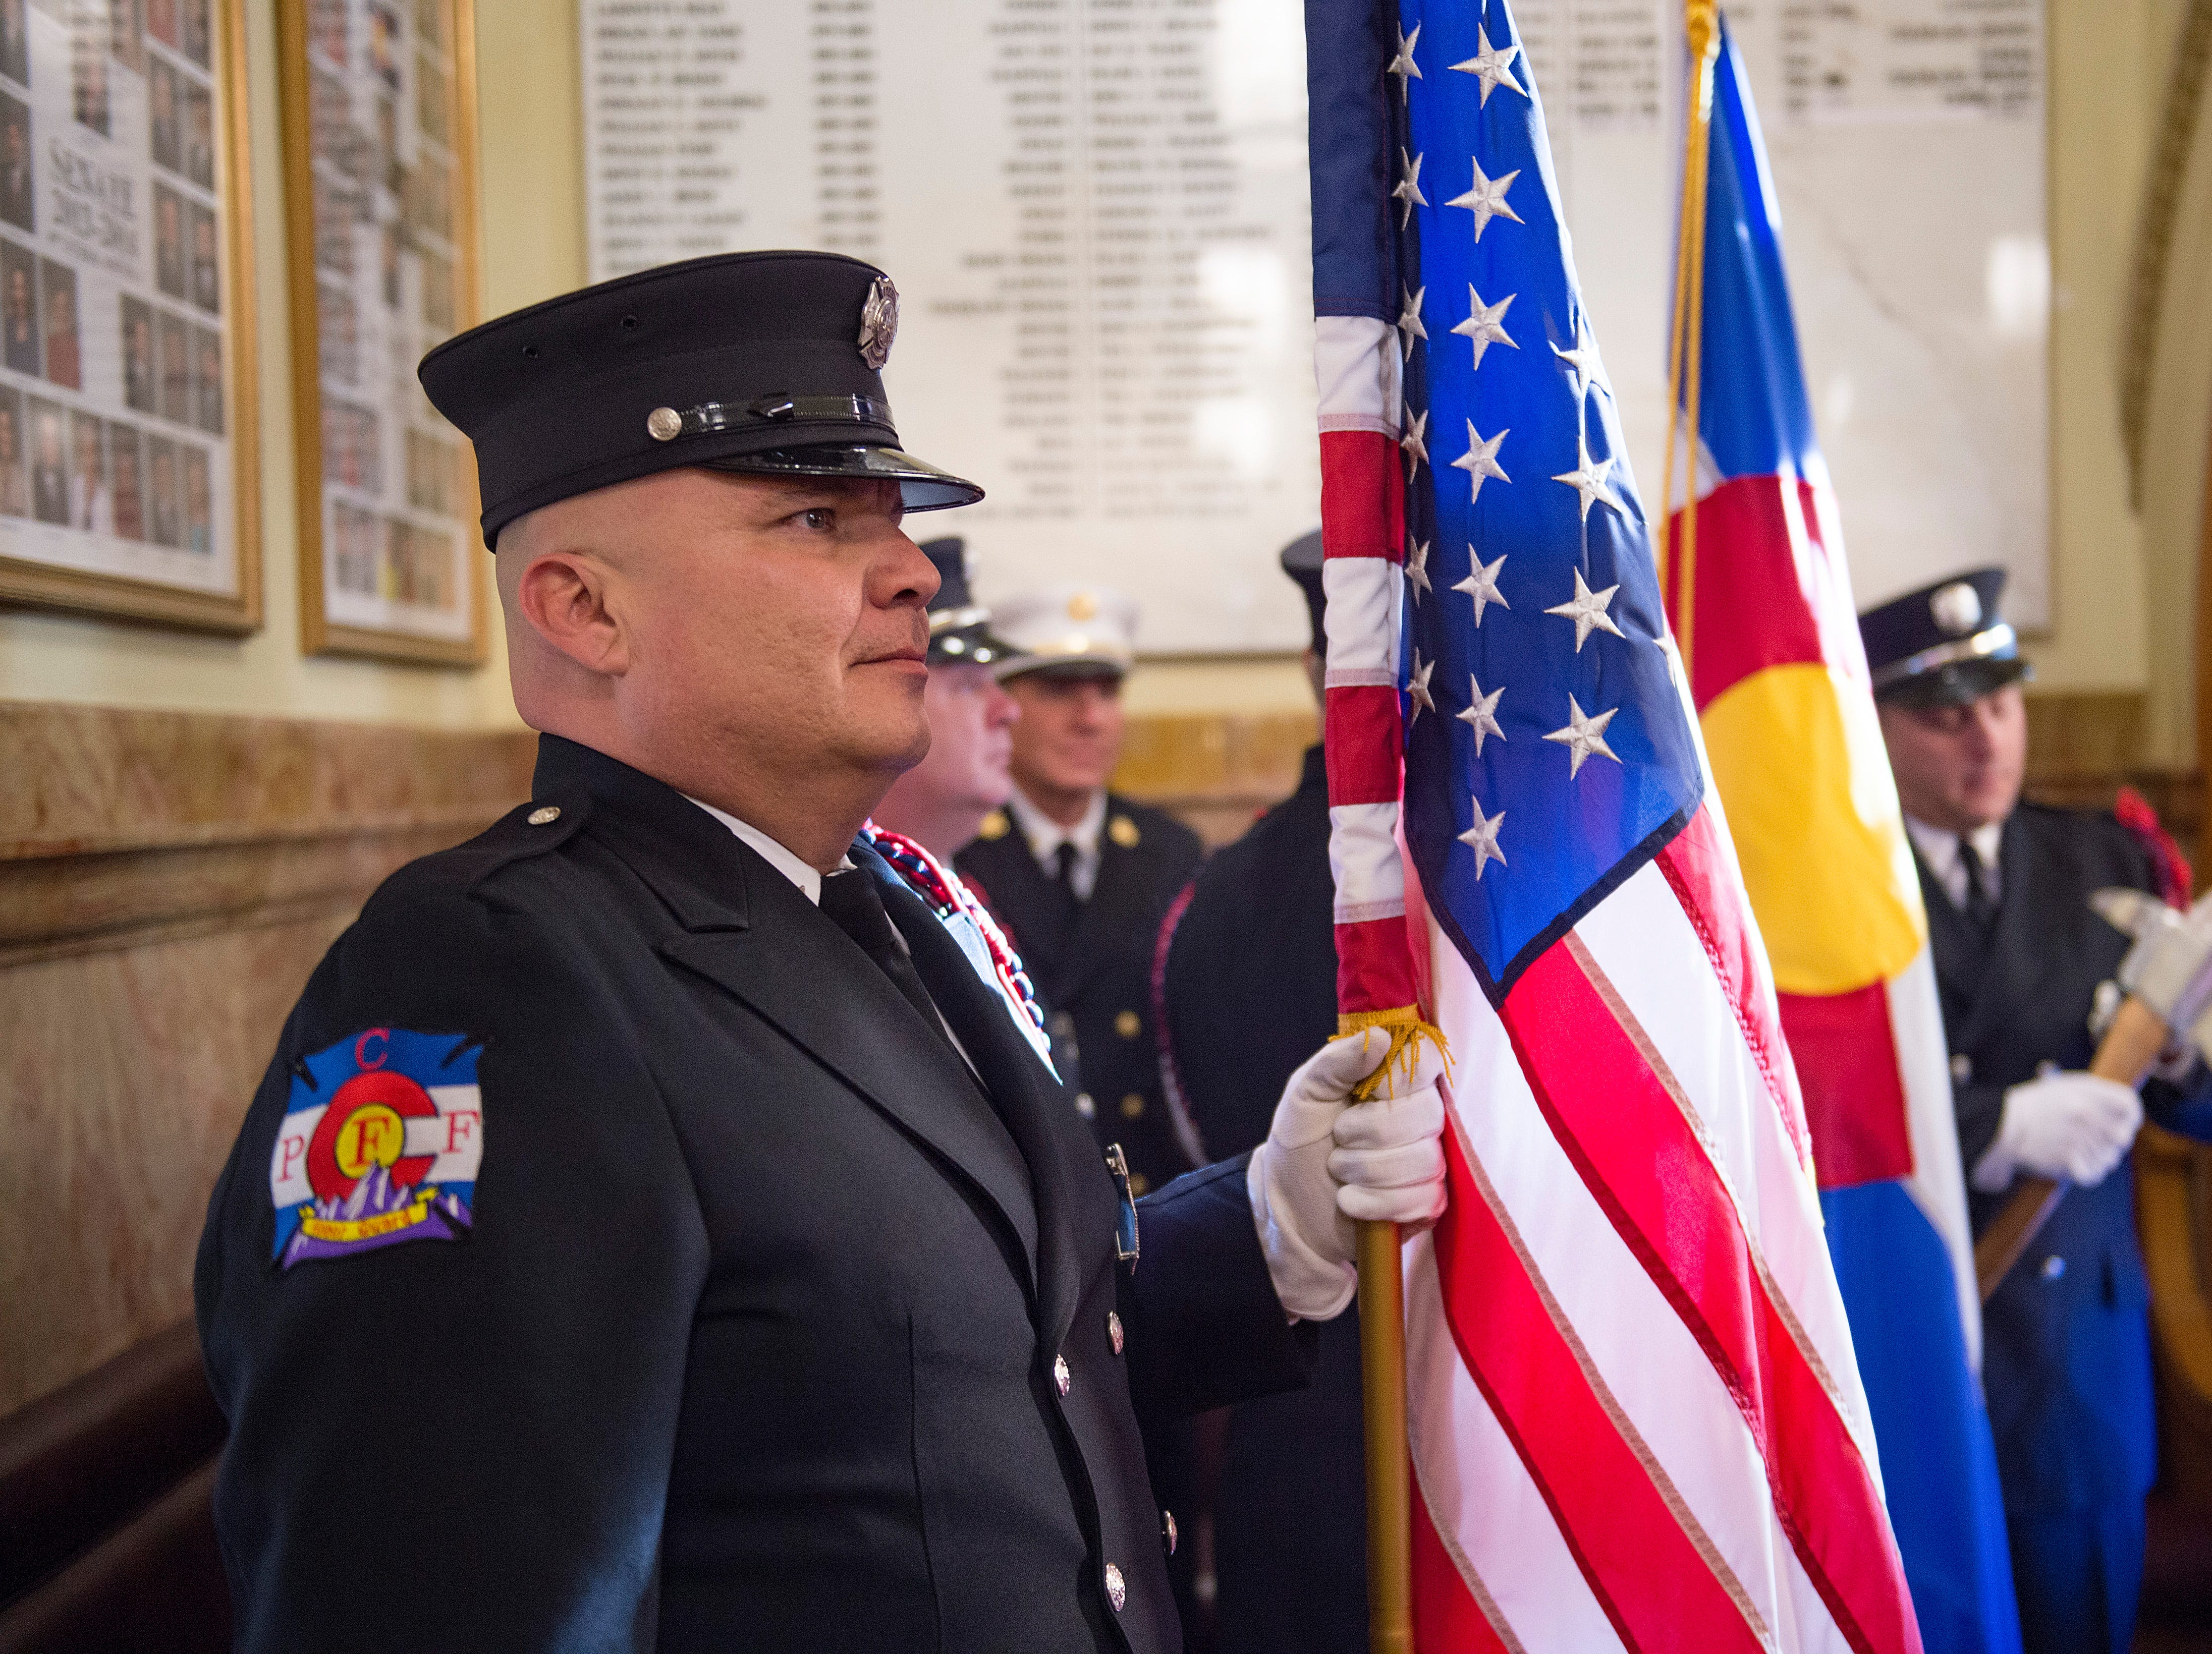 Joey Gutierrez with the City of Pueblo Fire Department stands with the United States flag before before entering the senate chambers as the 72nd General Assembly convenes at the Colorado State Capitol on Friday, January 4, 2019.